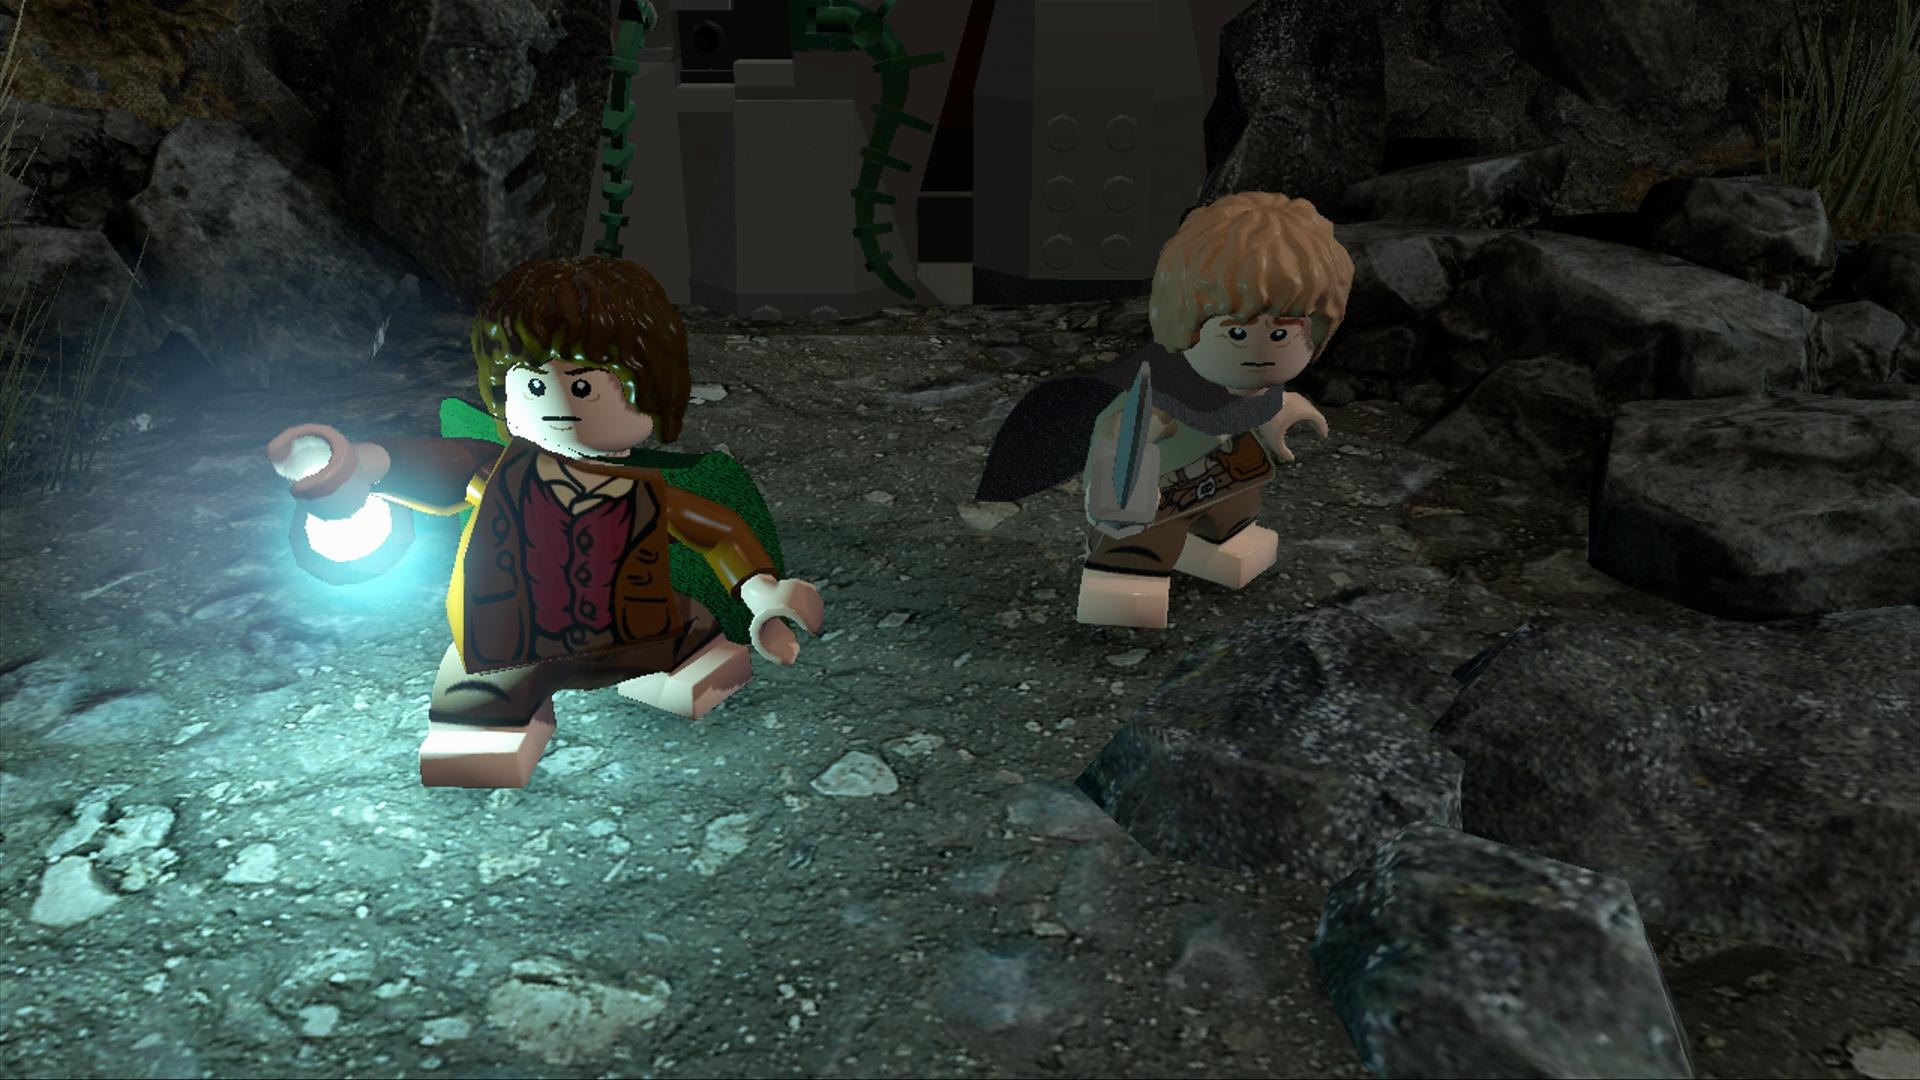 Legolotr_review_a_1920